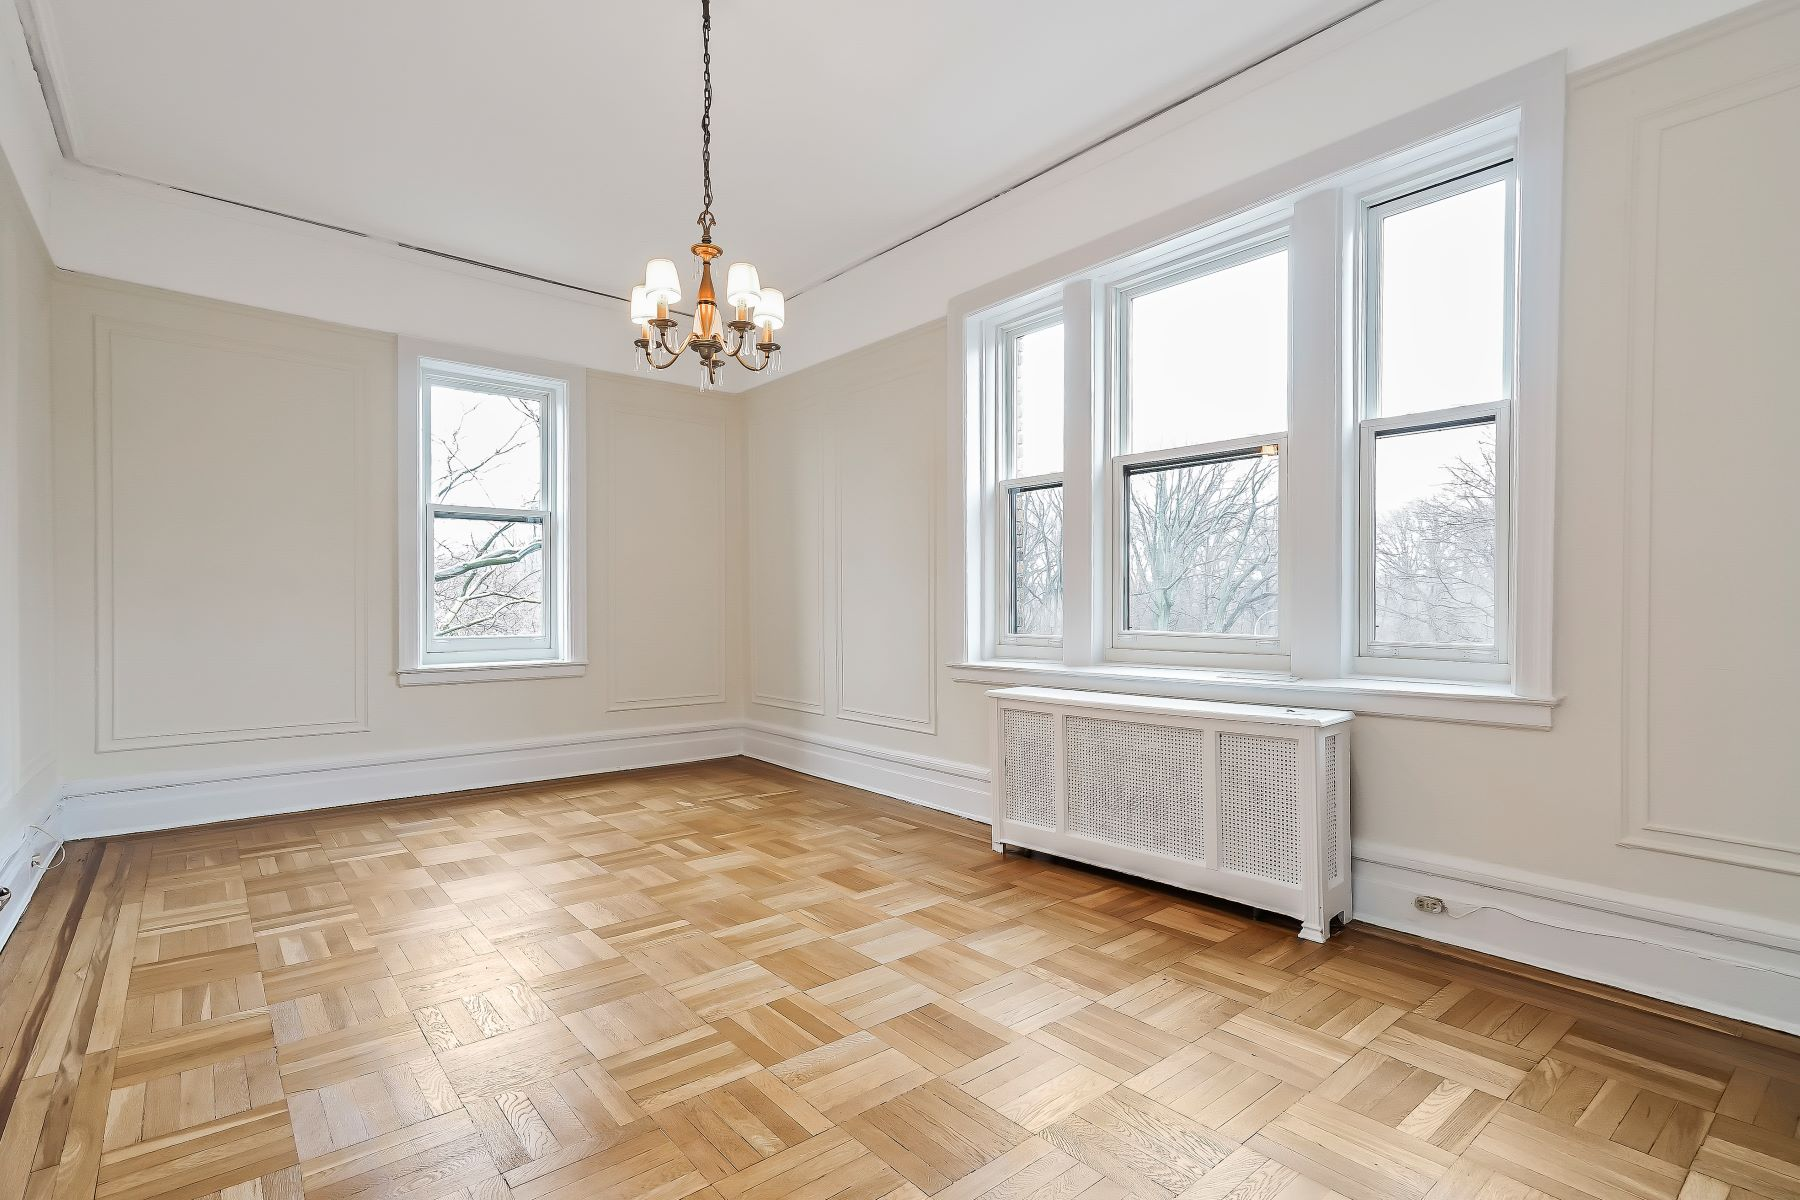 Additional photo for property listing at 75 PROSPECT PARK WEST, APT. 3B  Brooklyn, New York 11215 United States